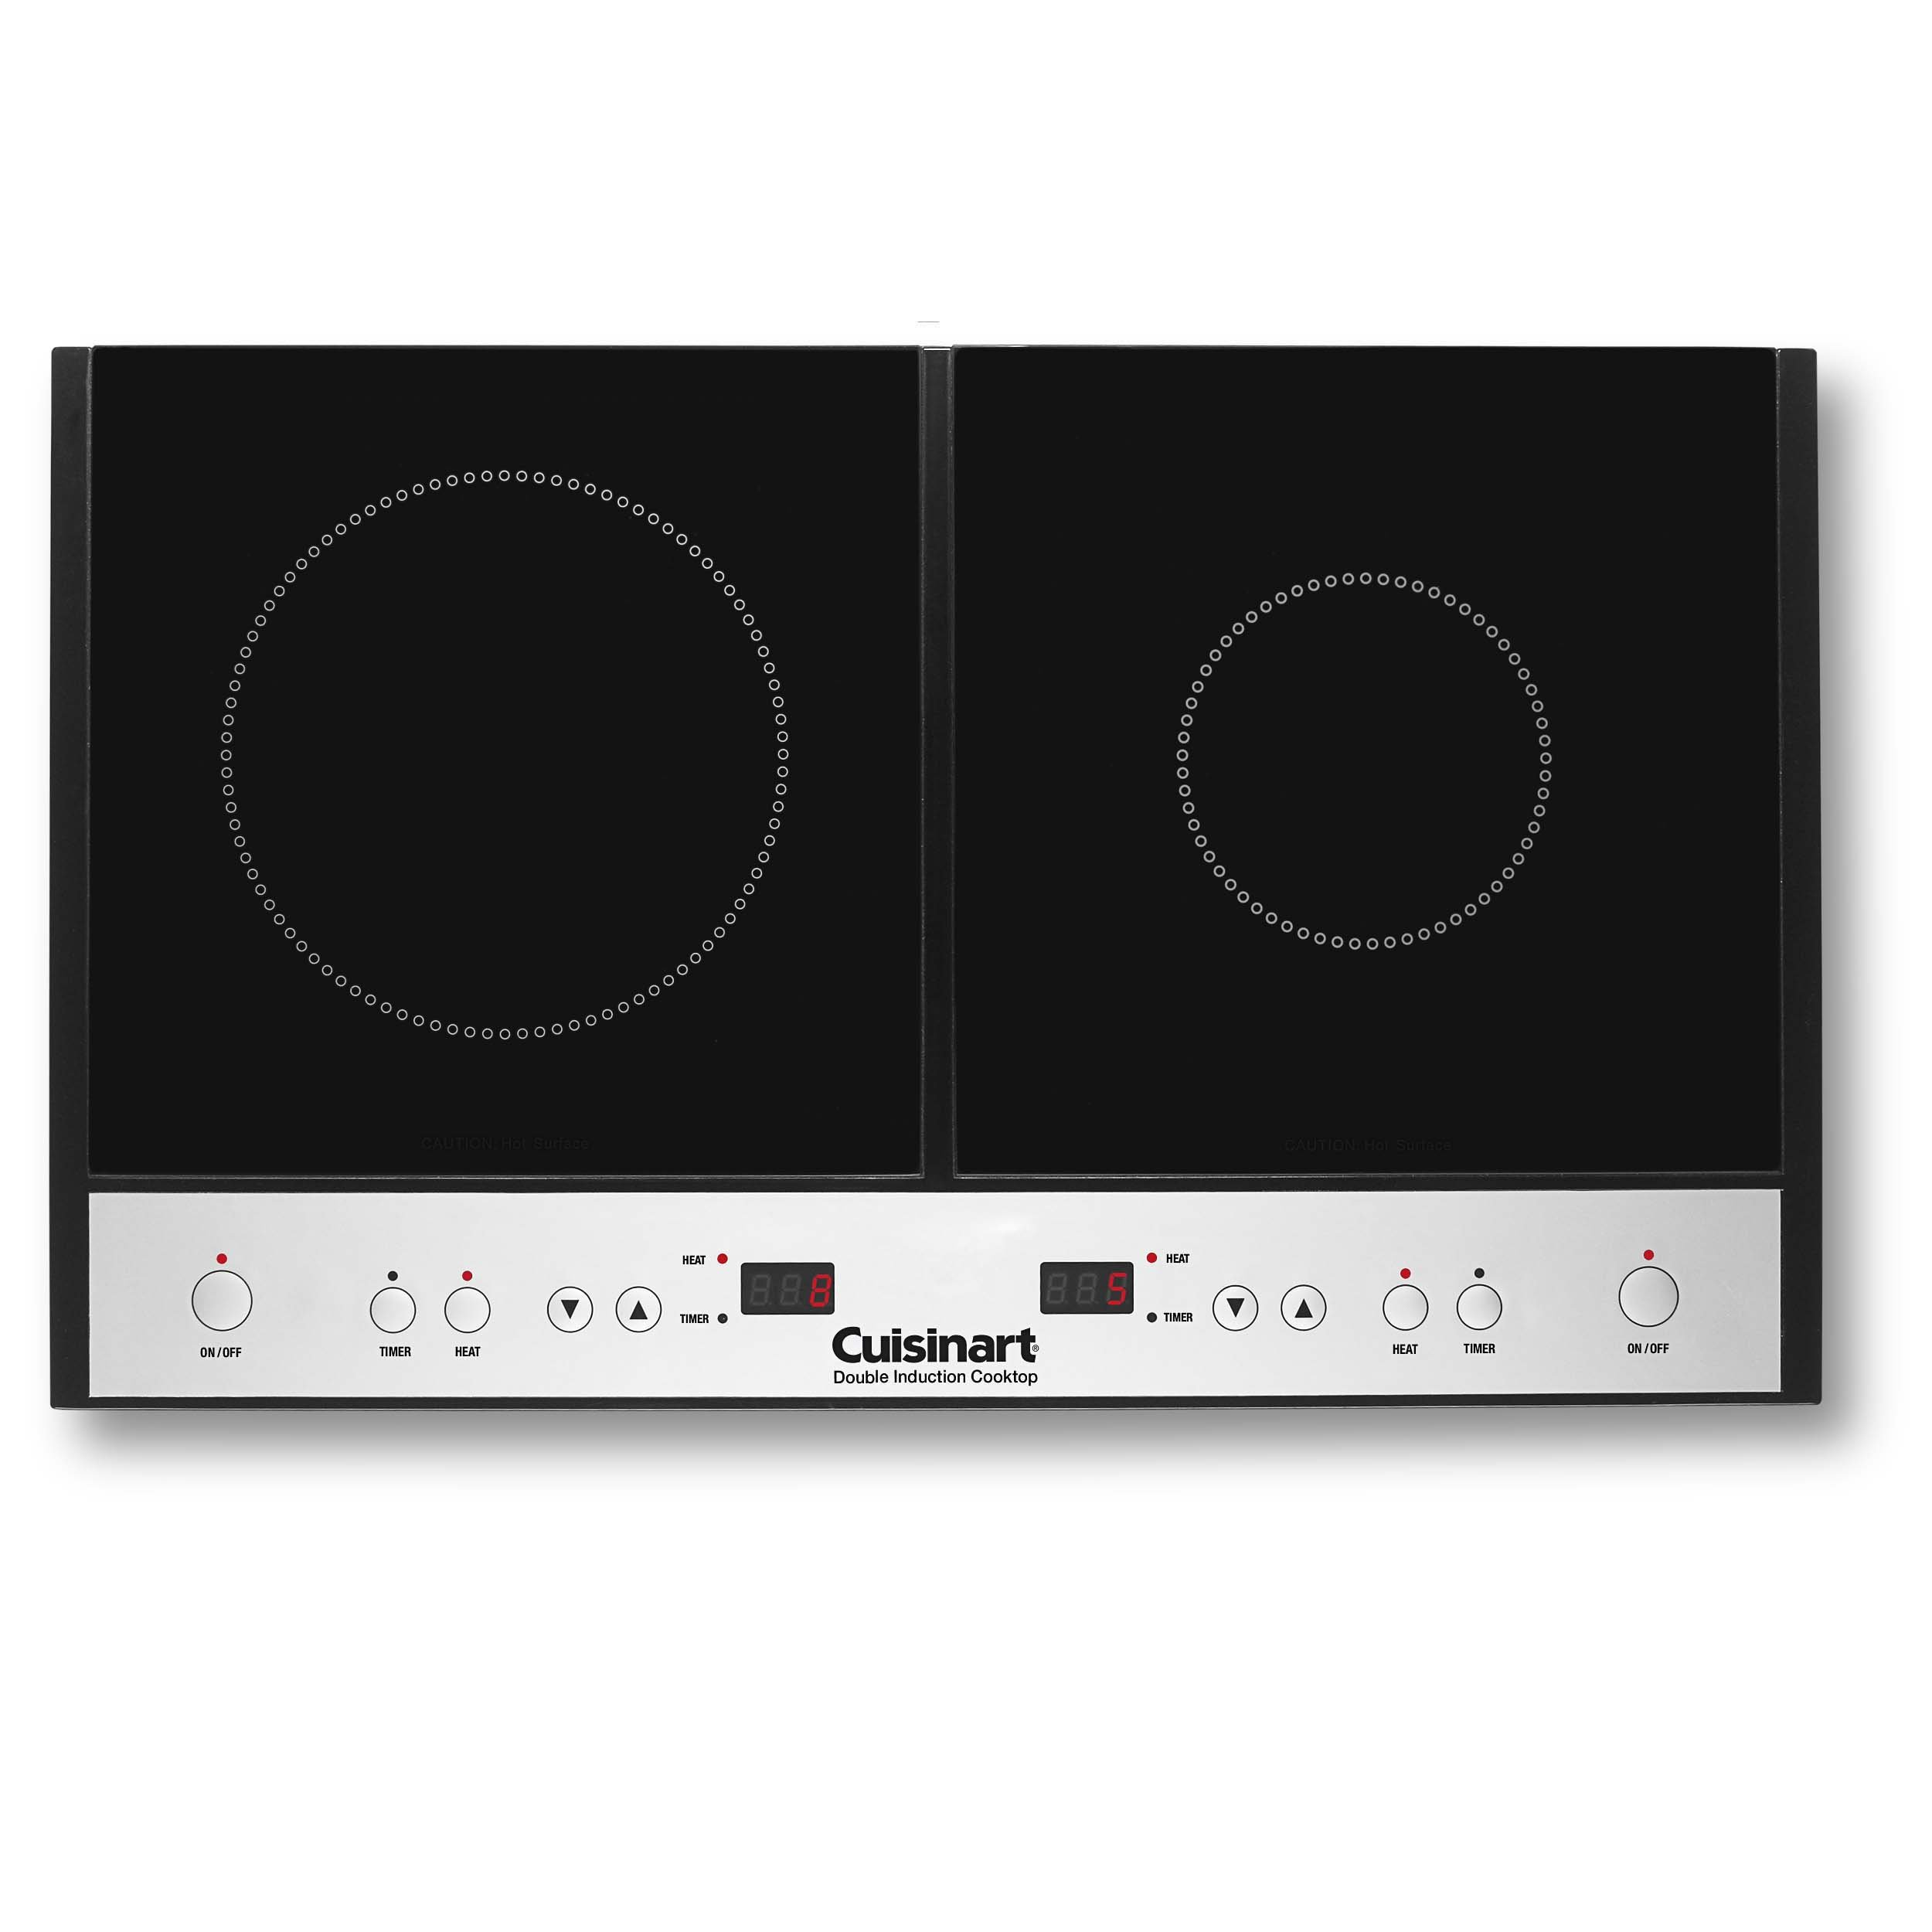 Cuisinart ICT-60 Double Induction Cooktop, Black by Cuisinart